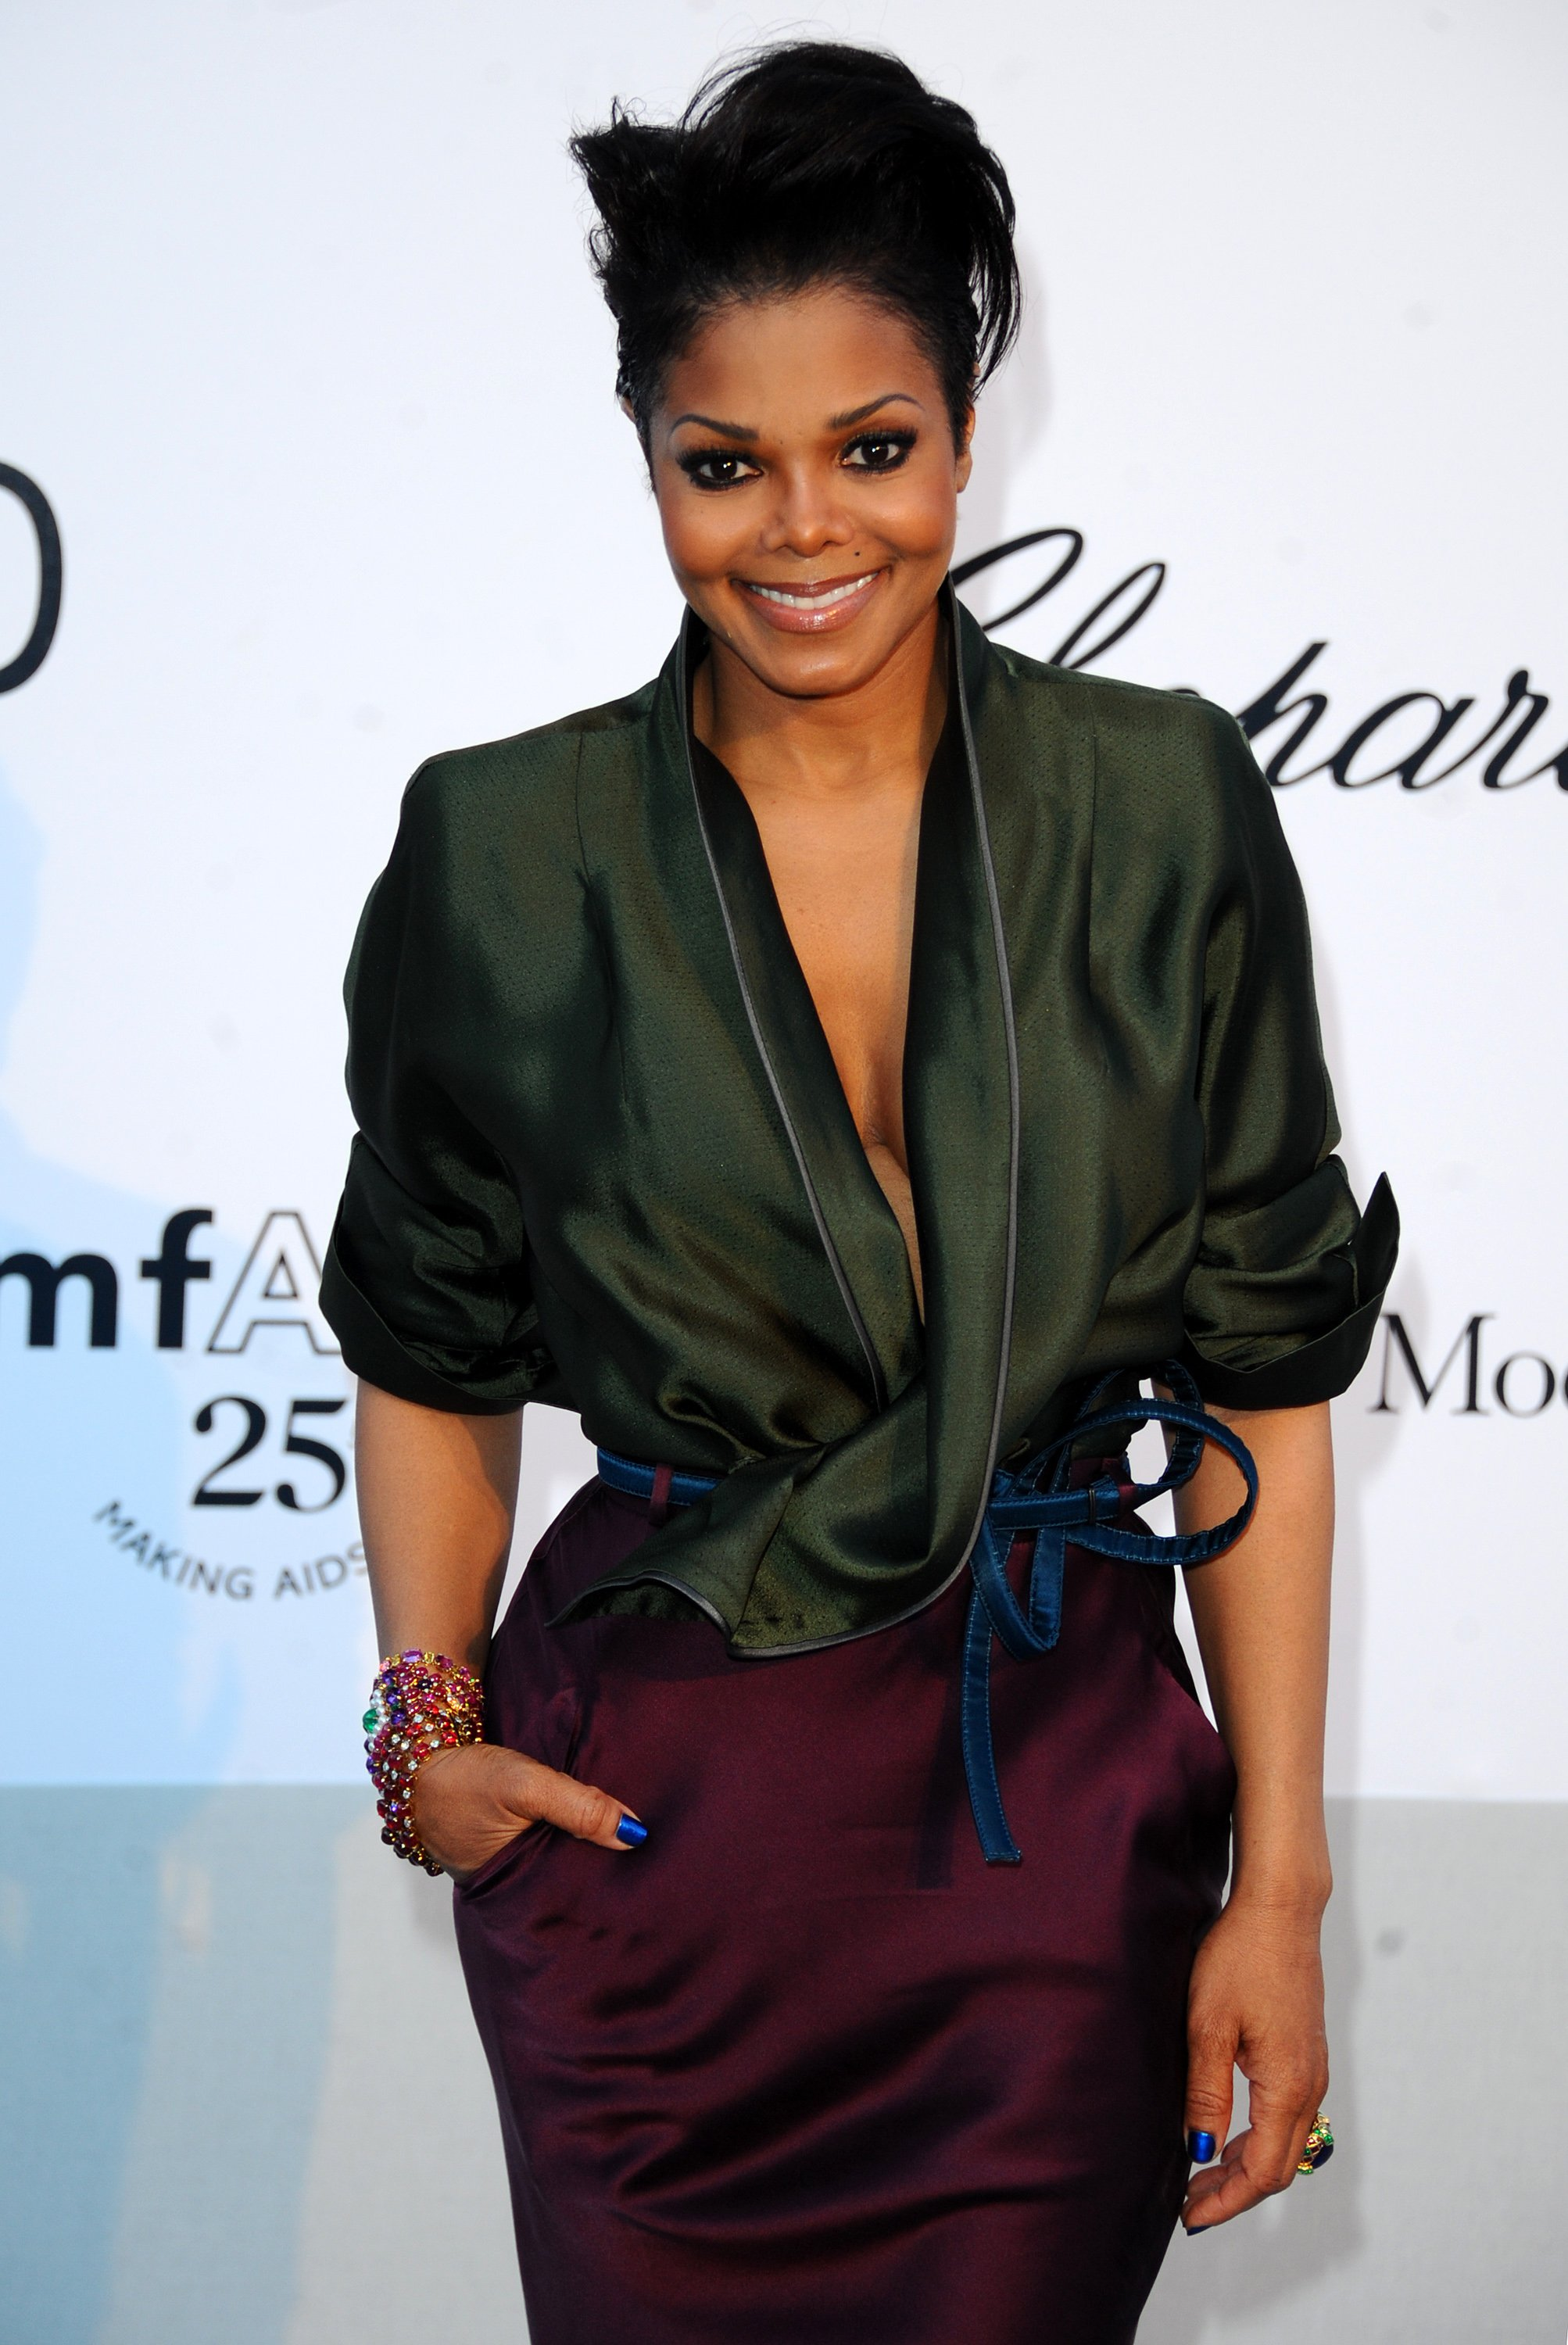 Janet Jackson in Antibes, France on May 19, 2011. |Photo: Getty Images